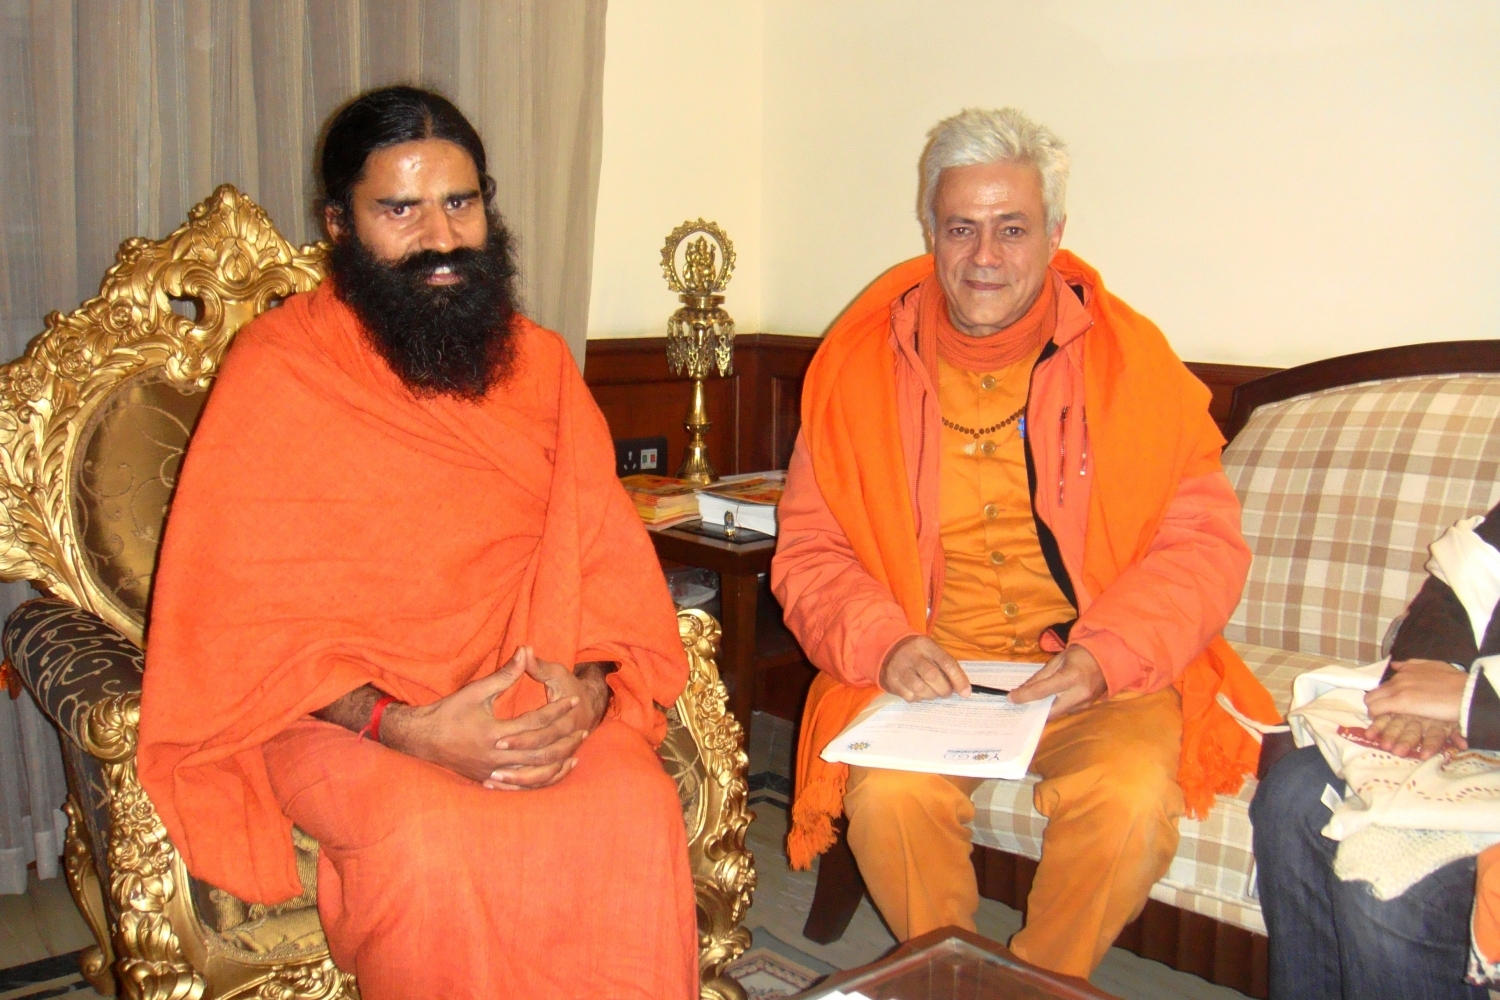 With Baba Ramdev, Patañjali Yogapeeth, India